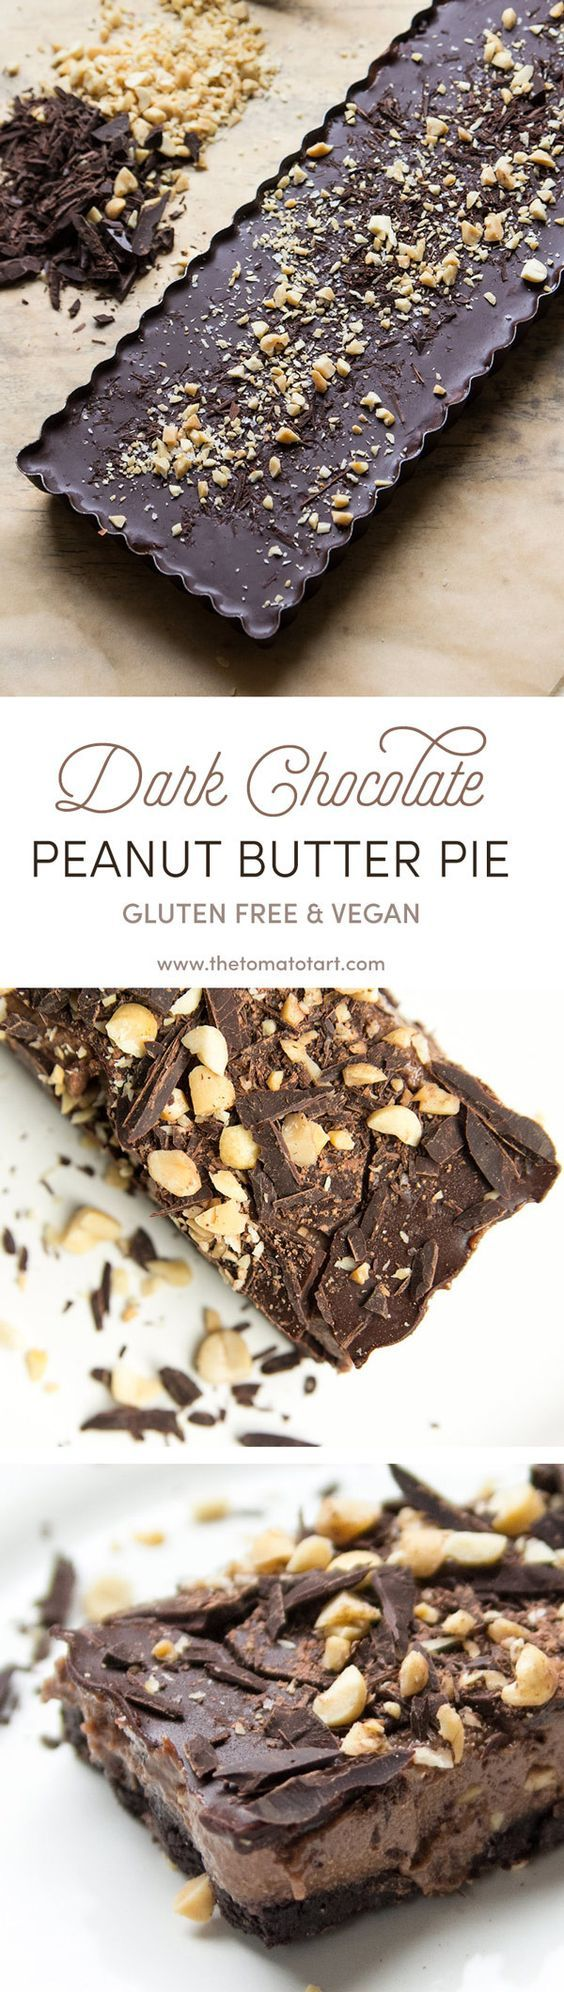 Gluten Free & Vegan Chocolate Peanut Butter Pie inspired by Girl Scout Cookies on www.thetomatotart.com